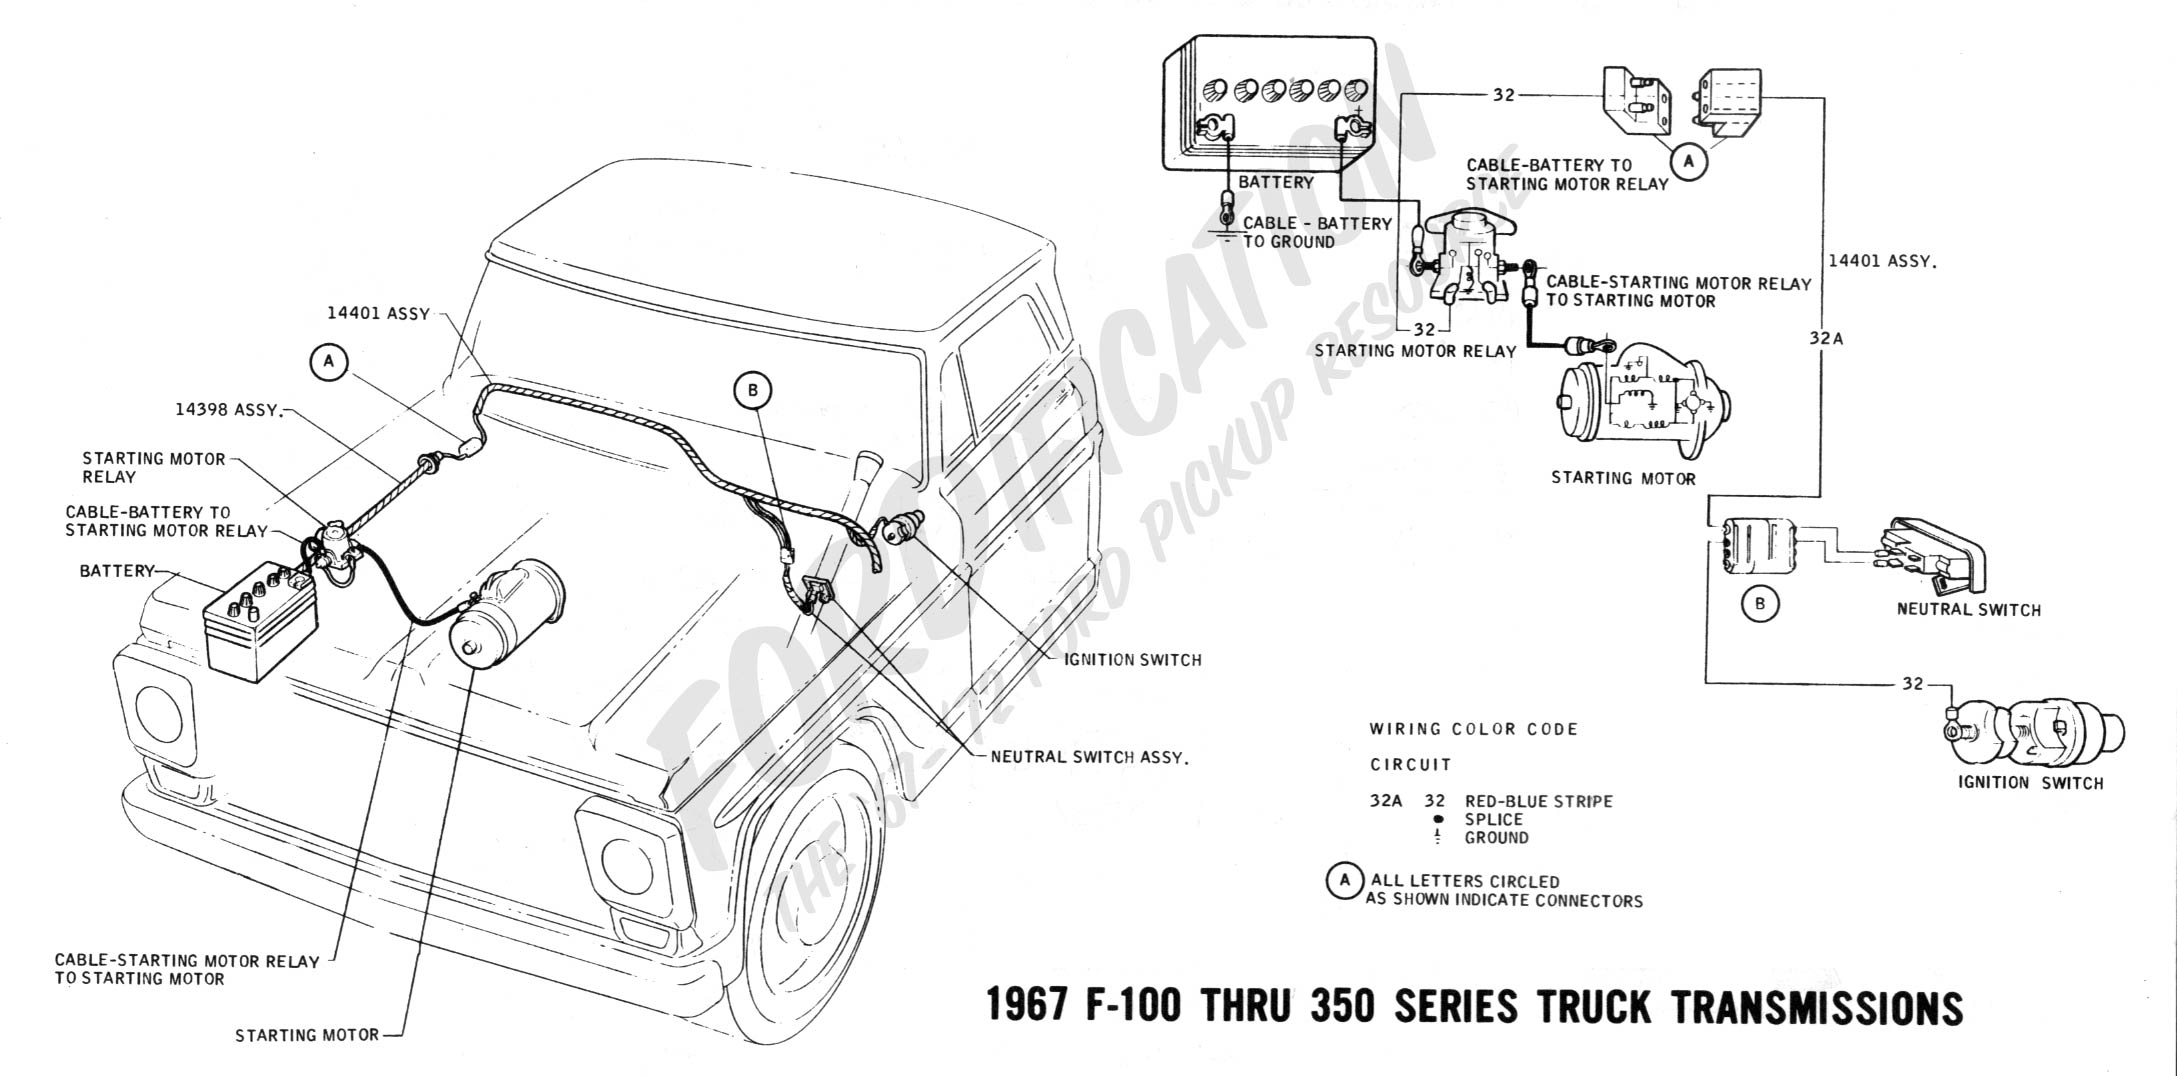 ford truck technical drawings and schematics section h wiring1967 f 100 thru f 350 truck transmissions · 1967 ford overdrive